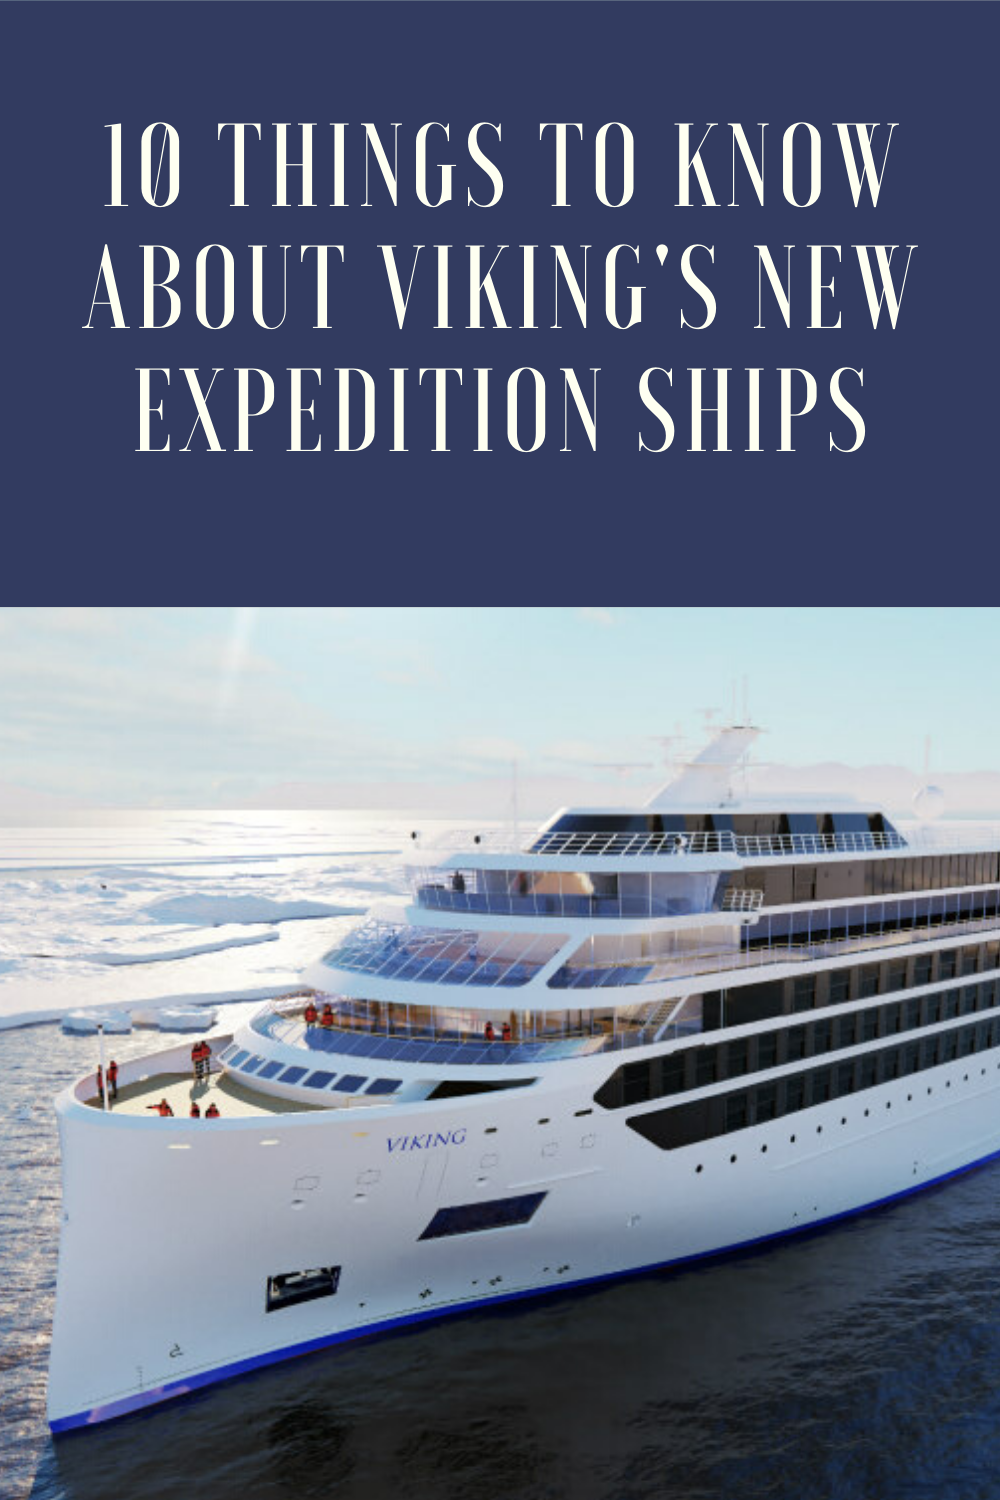 Viking Cruises Is Charting New Territory Yet Again The Norway Based River And Ocean Cruise Line Which Launched In Ocean Cruise Viking Cruises Ocean Sailing